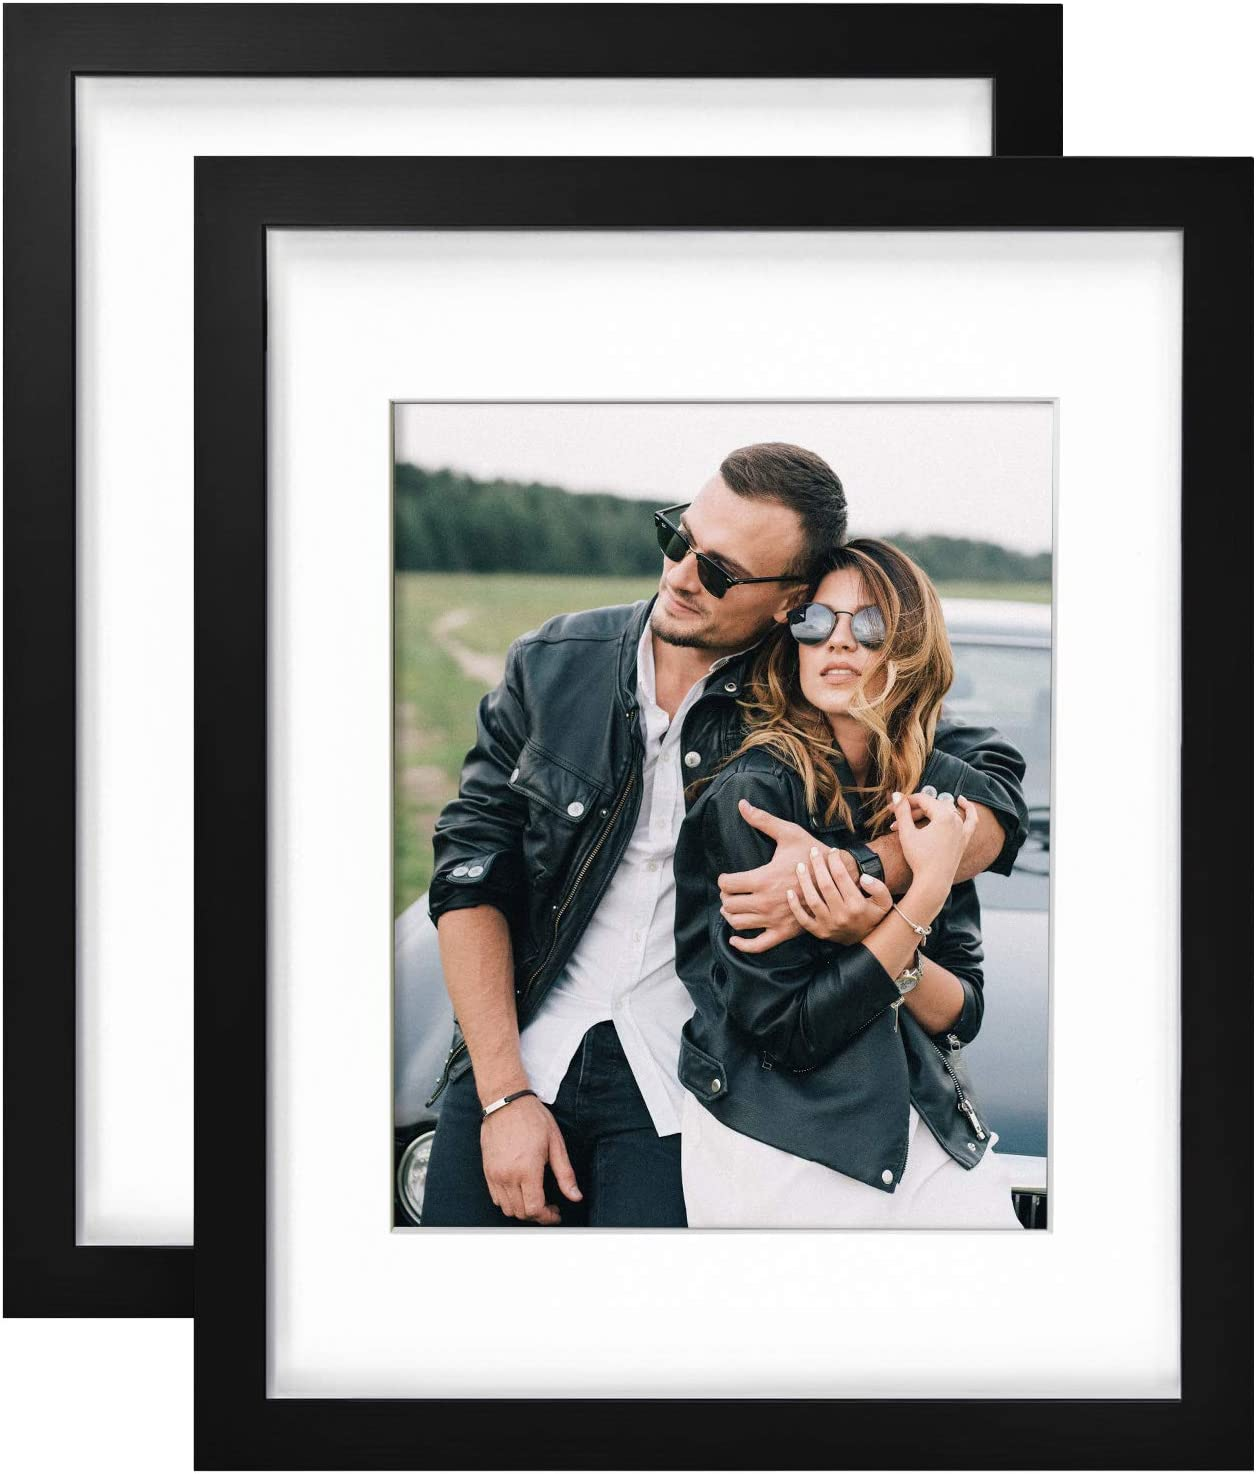 Yome 11x14 Picture Frame for New color Photos or Spring new work Mat 8x10 witho with